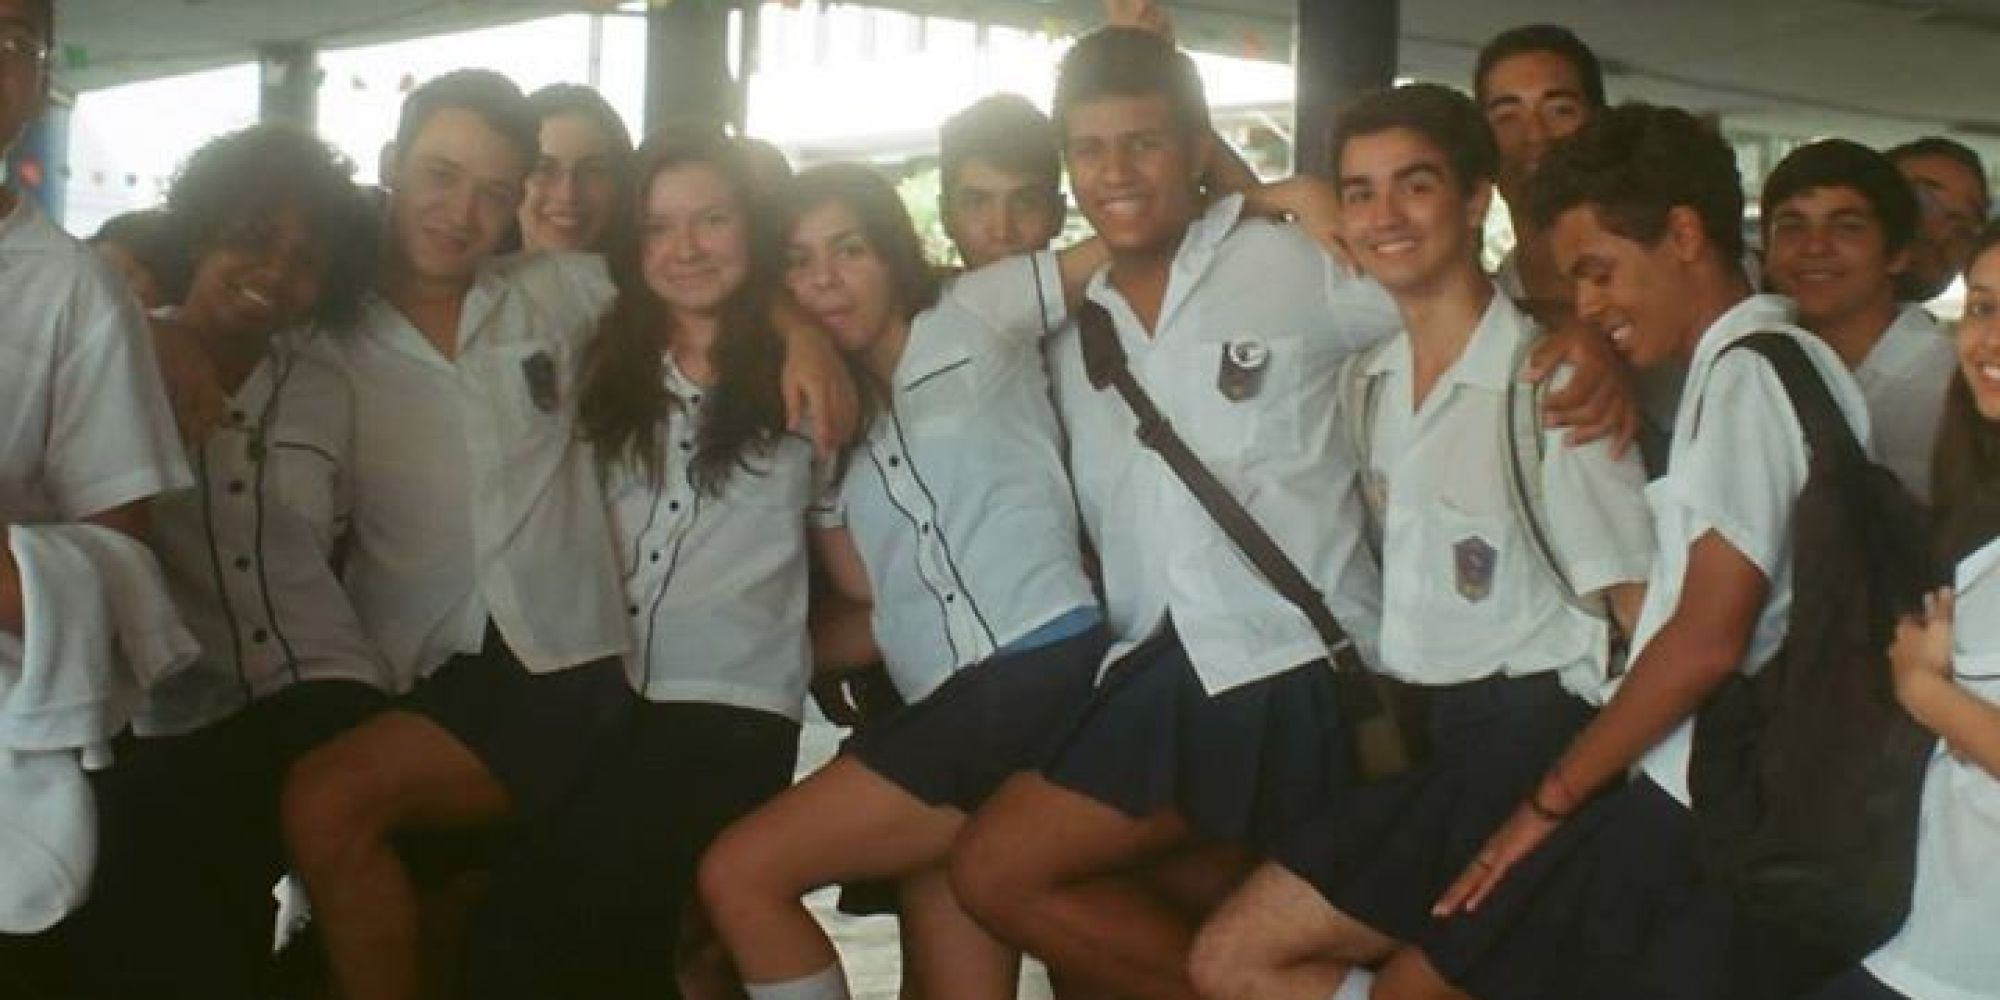 Boys Wear Skirts to School in Protest After Trans Classmate Is Fined for Doing the Same – #VouDeSaia